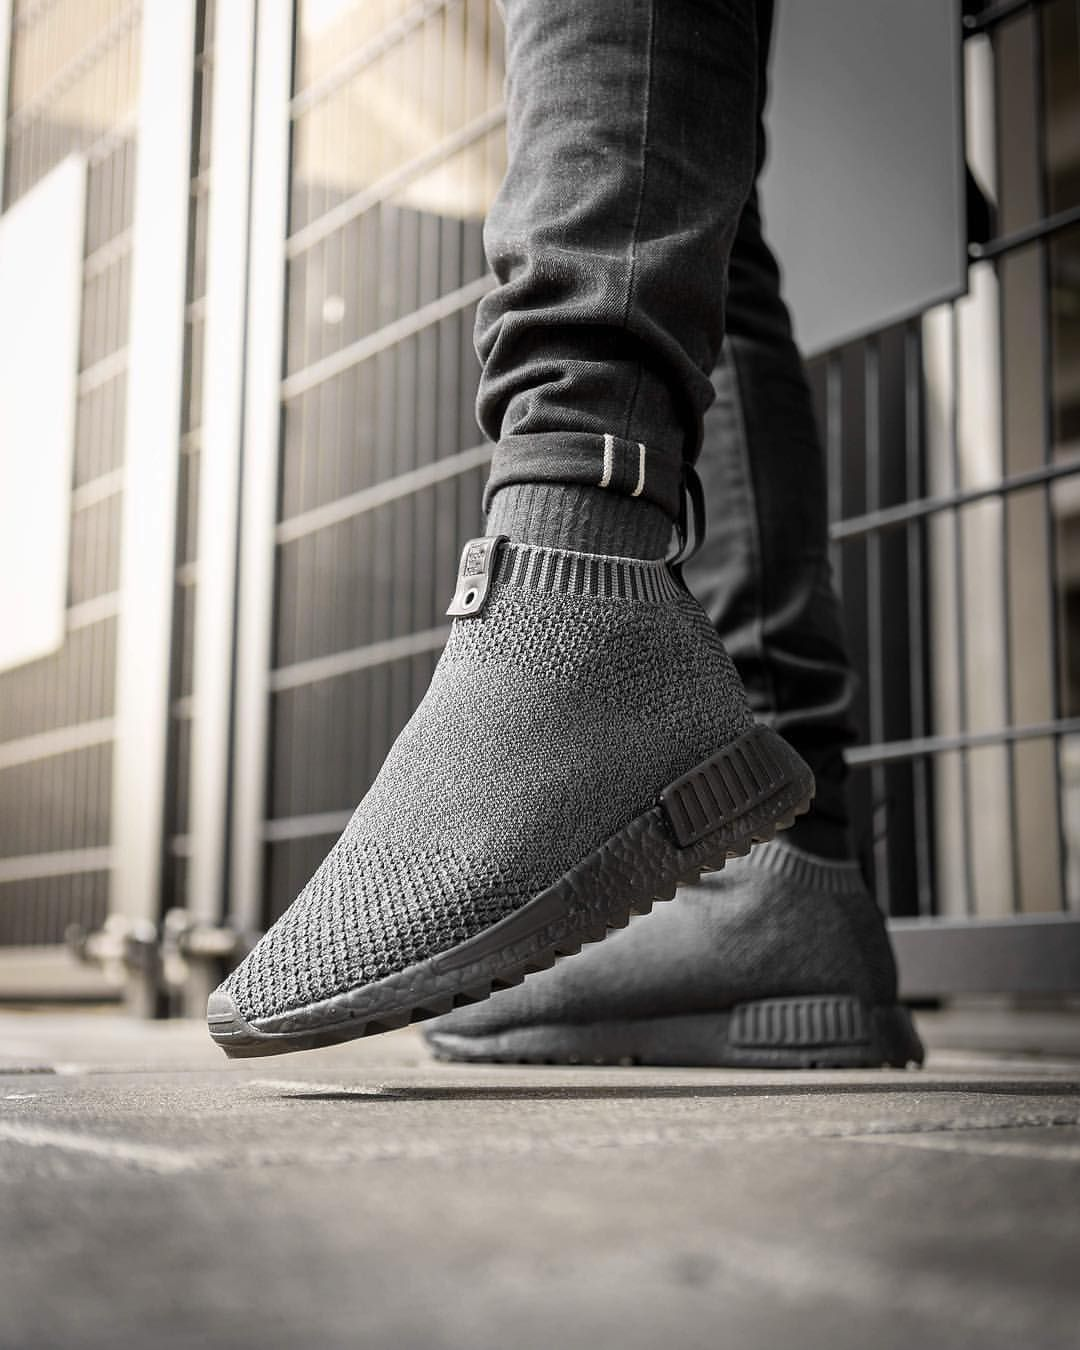 1a5fbaee258d1 Up close with The Good Will Out x adidas Consortium NMD CS1 on feet ...